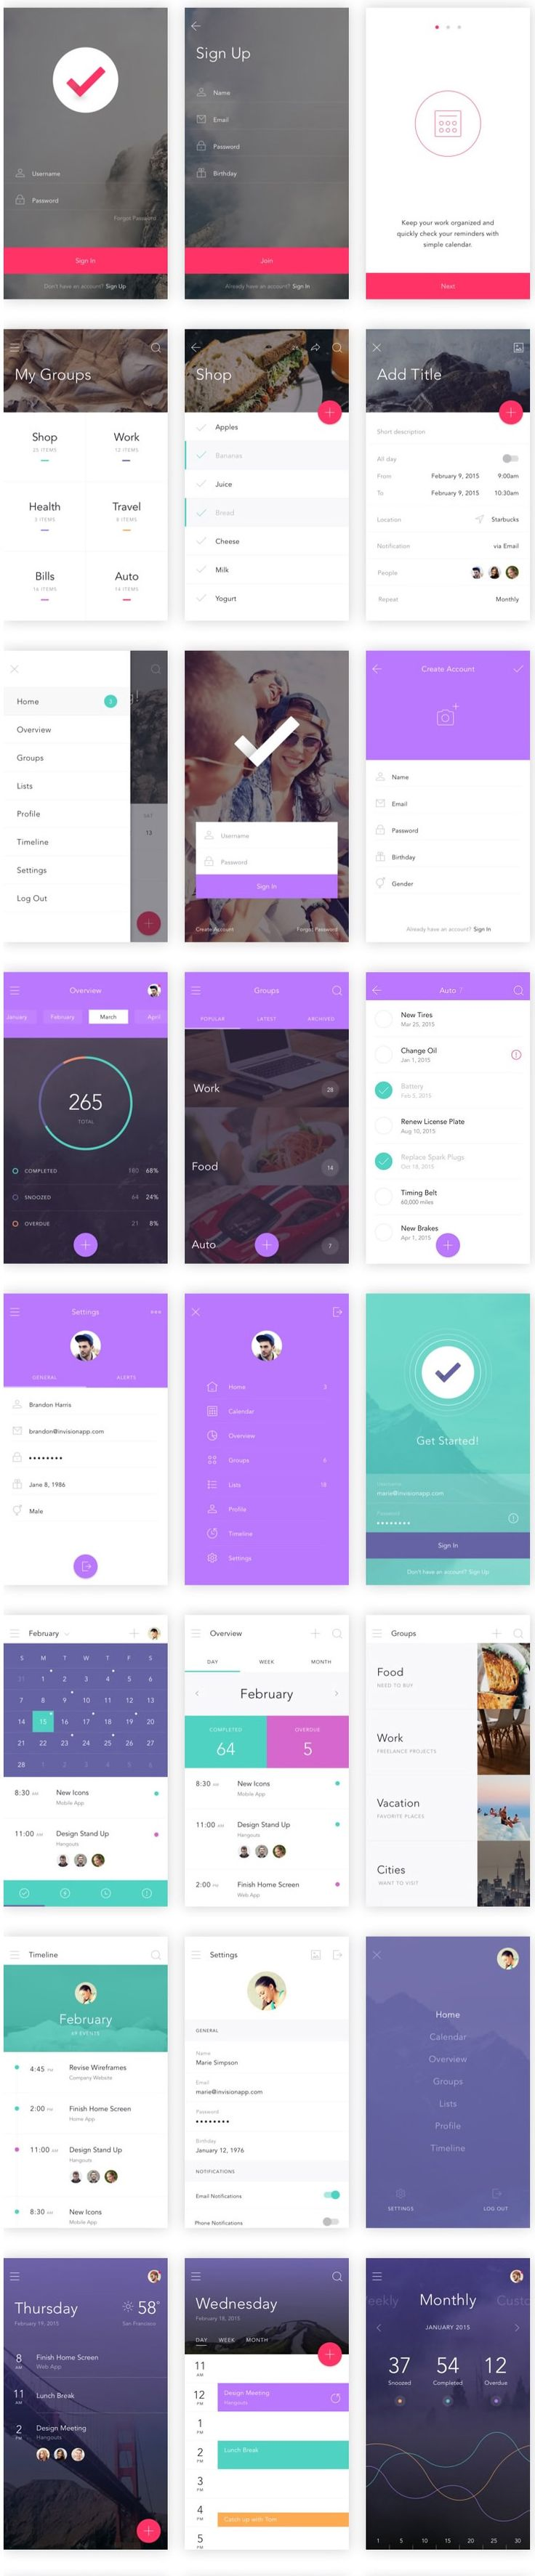 30 Latest Free Mobile App UI PSD Designs